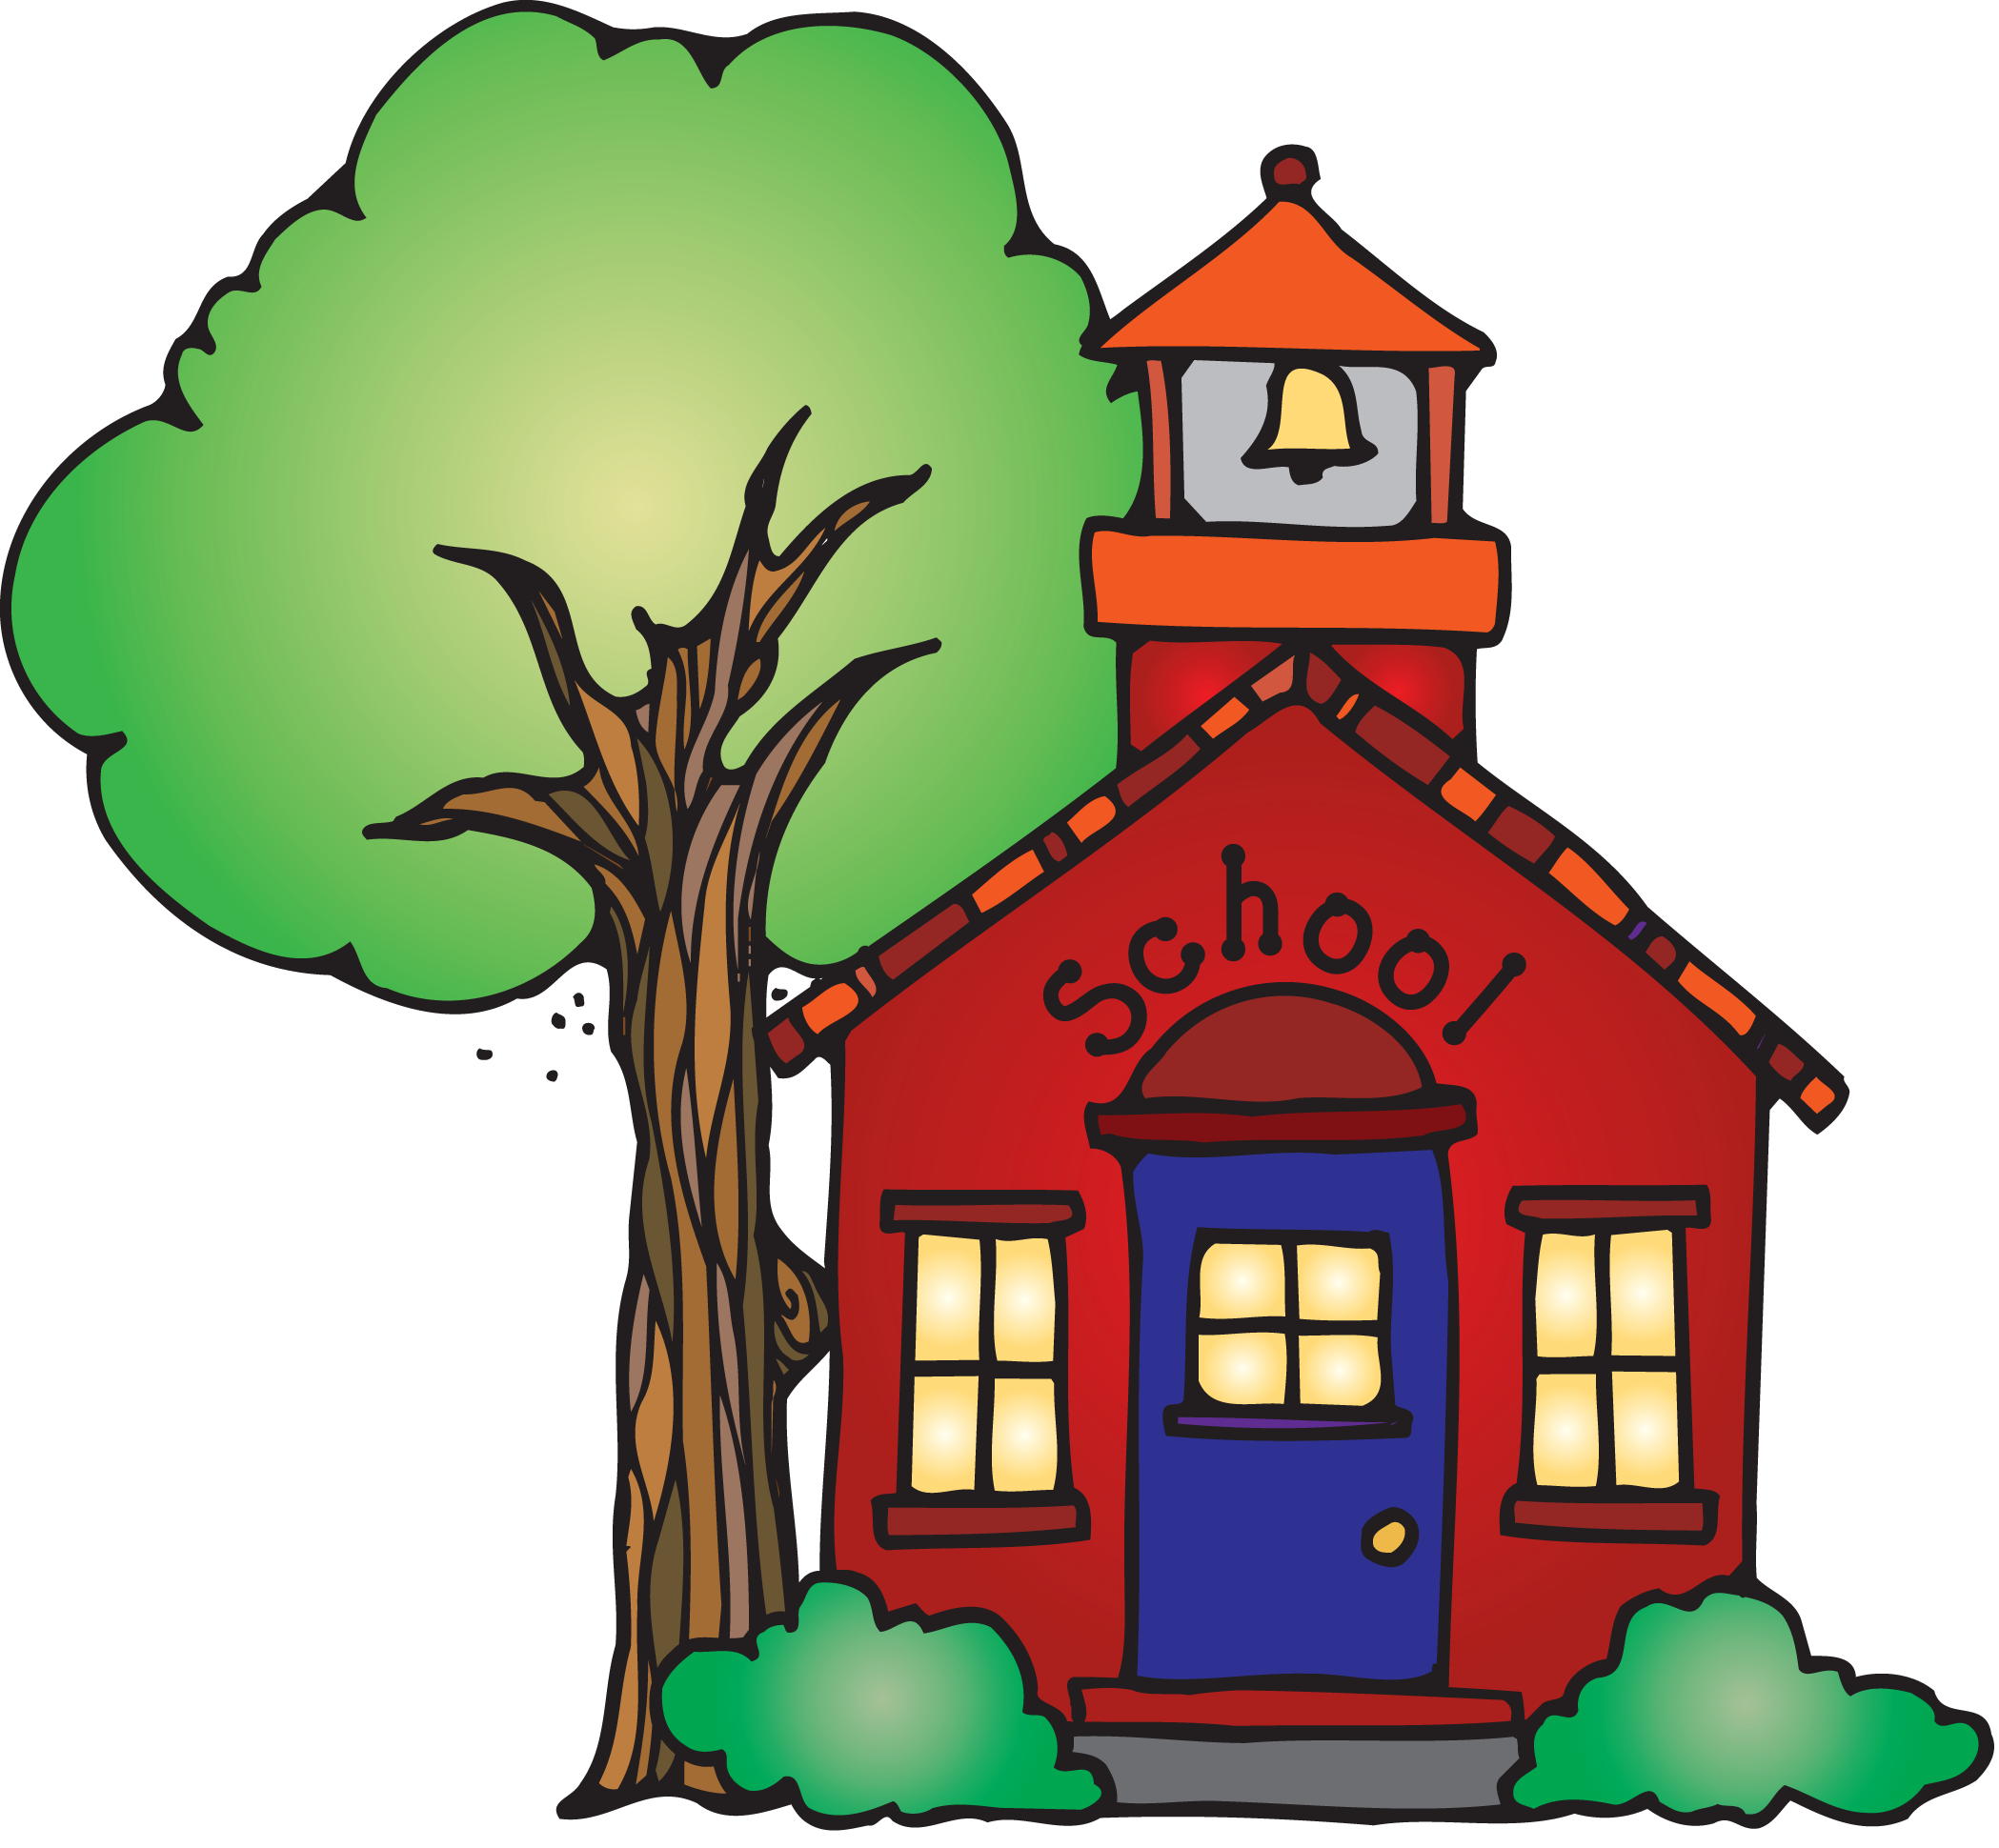 Schools Out Clipart at GetDrawings com | Free for personal